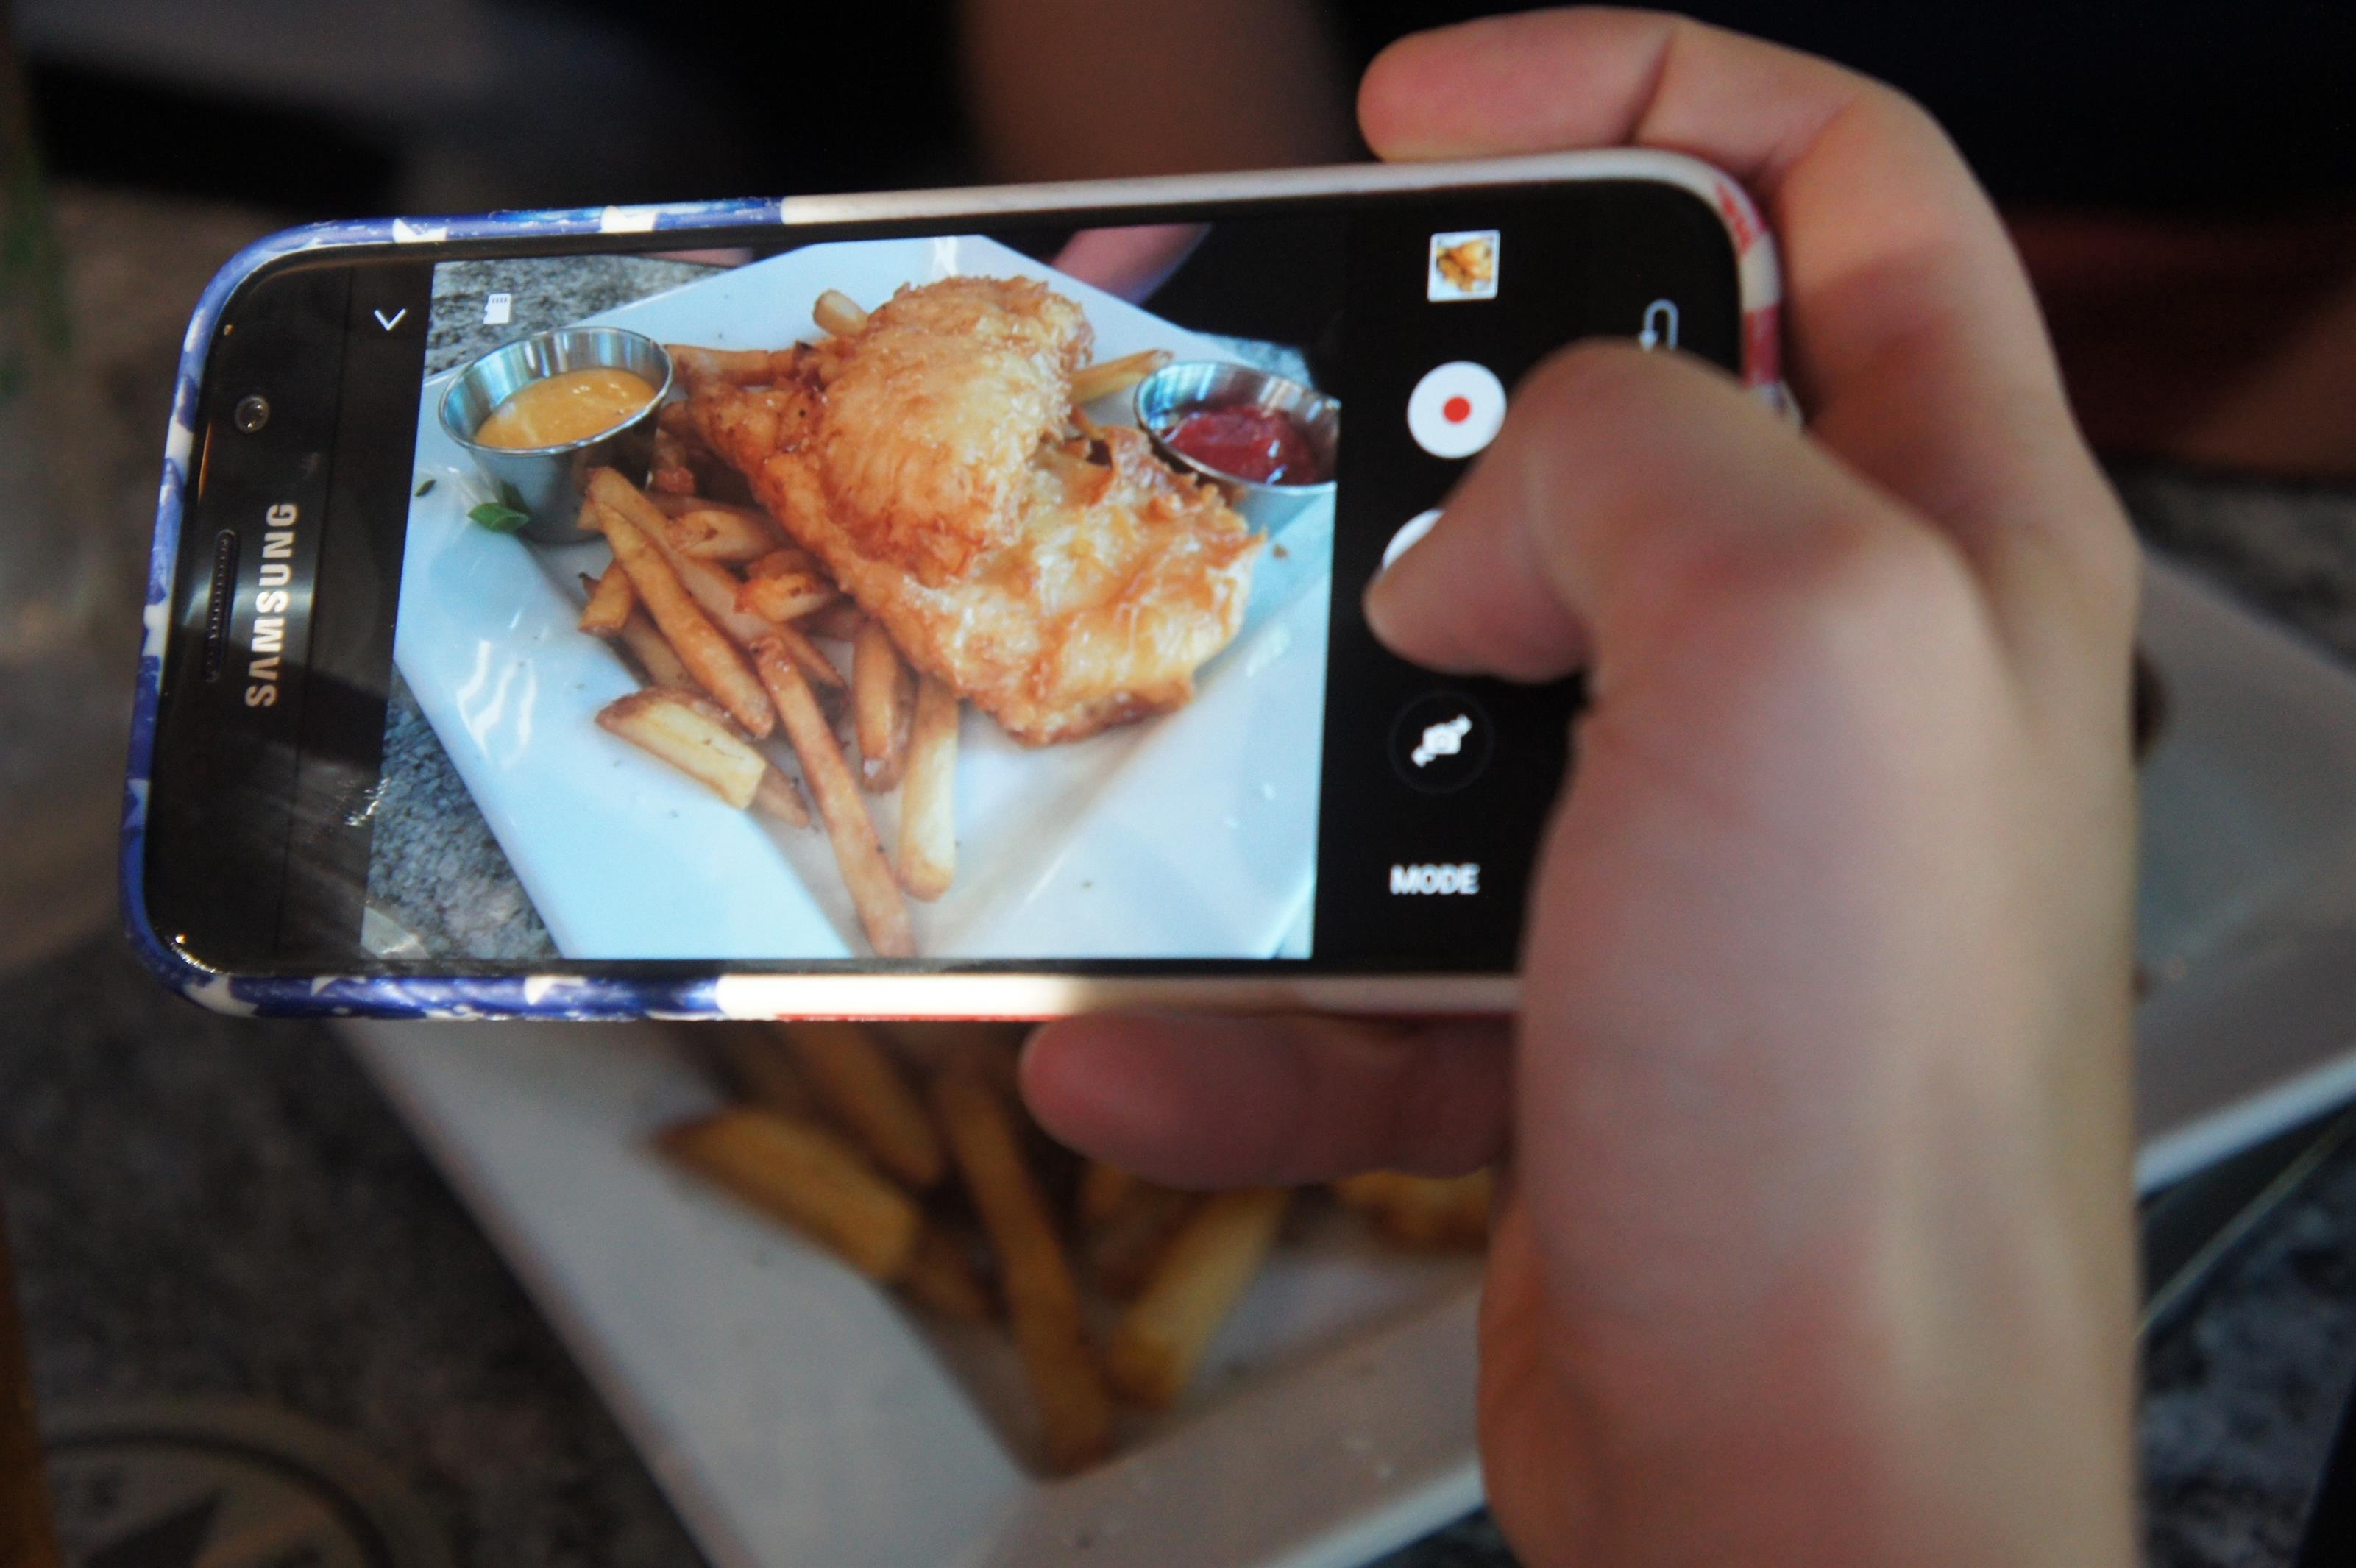 Person taking a photo of a fish and chips dish on their mobile